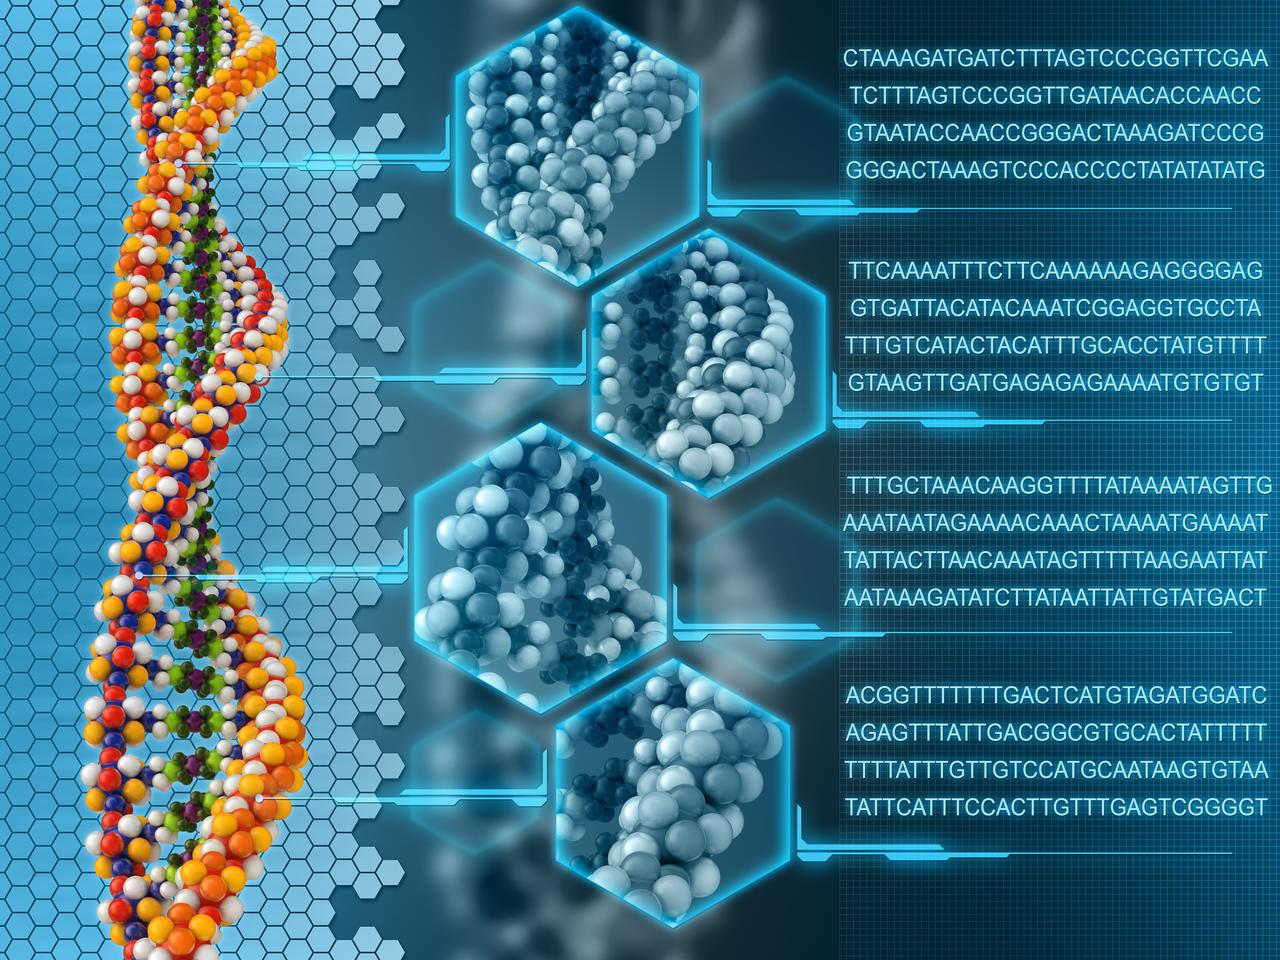 A single human genome can now be analyzed in a matter of hours, opening the door to more practical large-scale analysis across entire populations around the globe (Photo: Shutterstock)